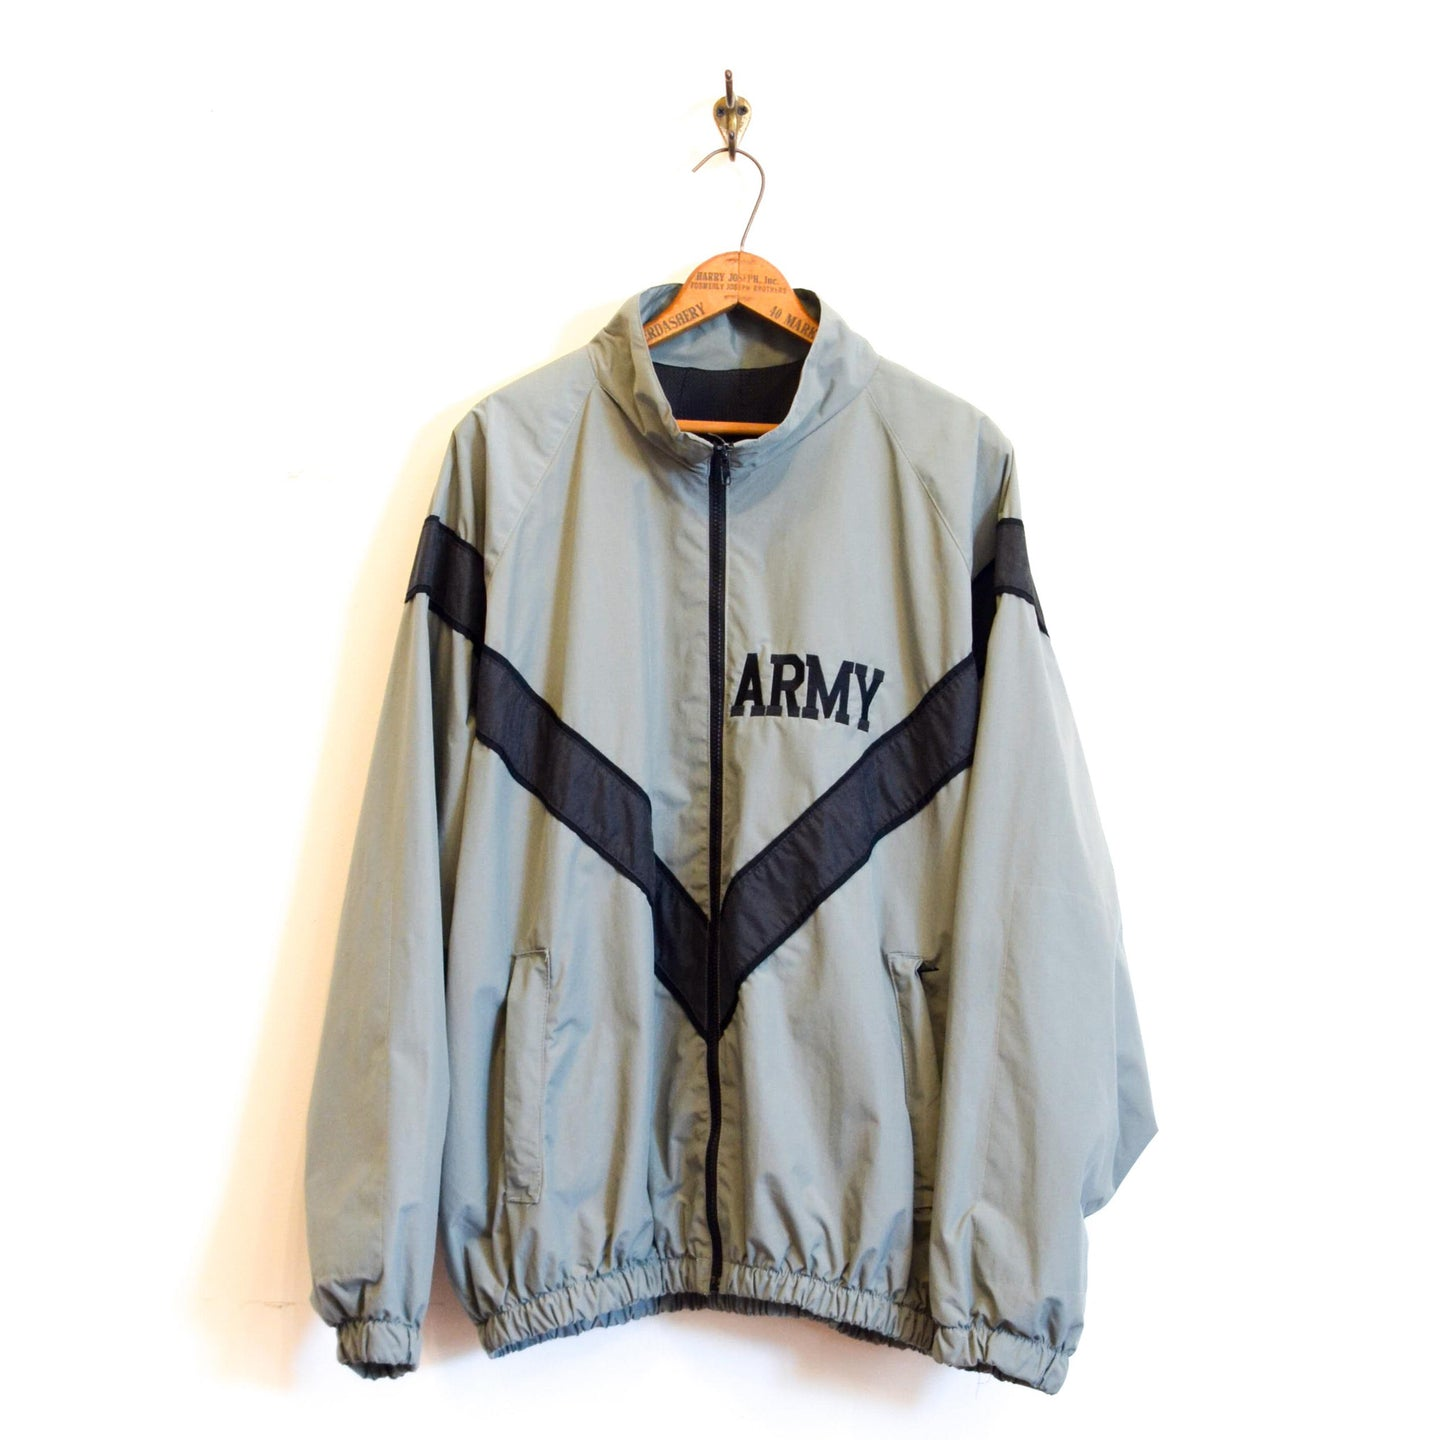 U.S. Military - U.S. Army Training Jacket